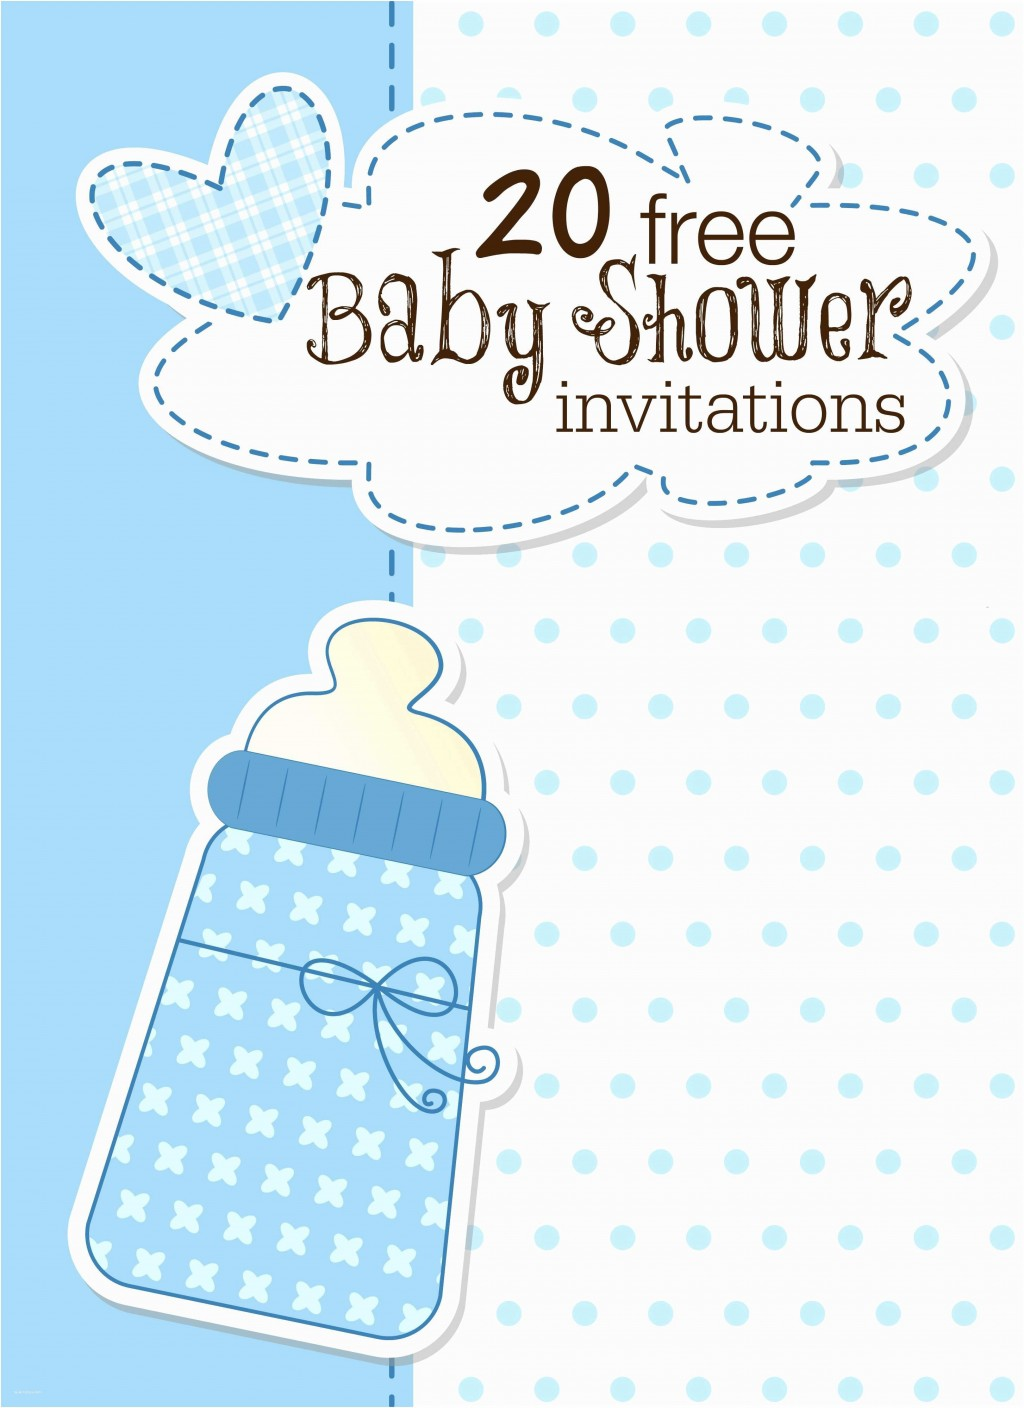 008 Archaicawful Free Baby Shower Invitation Template Idea  Printable Editable Microsoft Word To PrintLarge